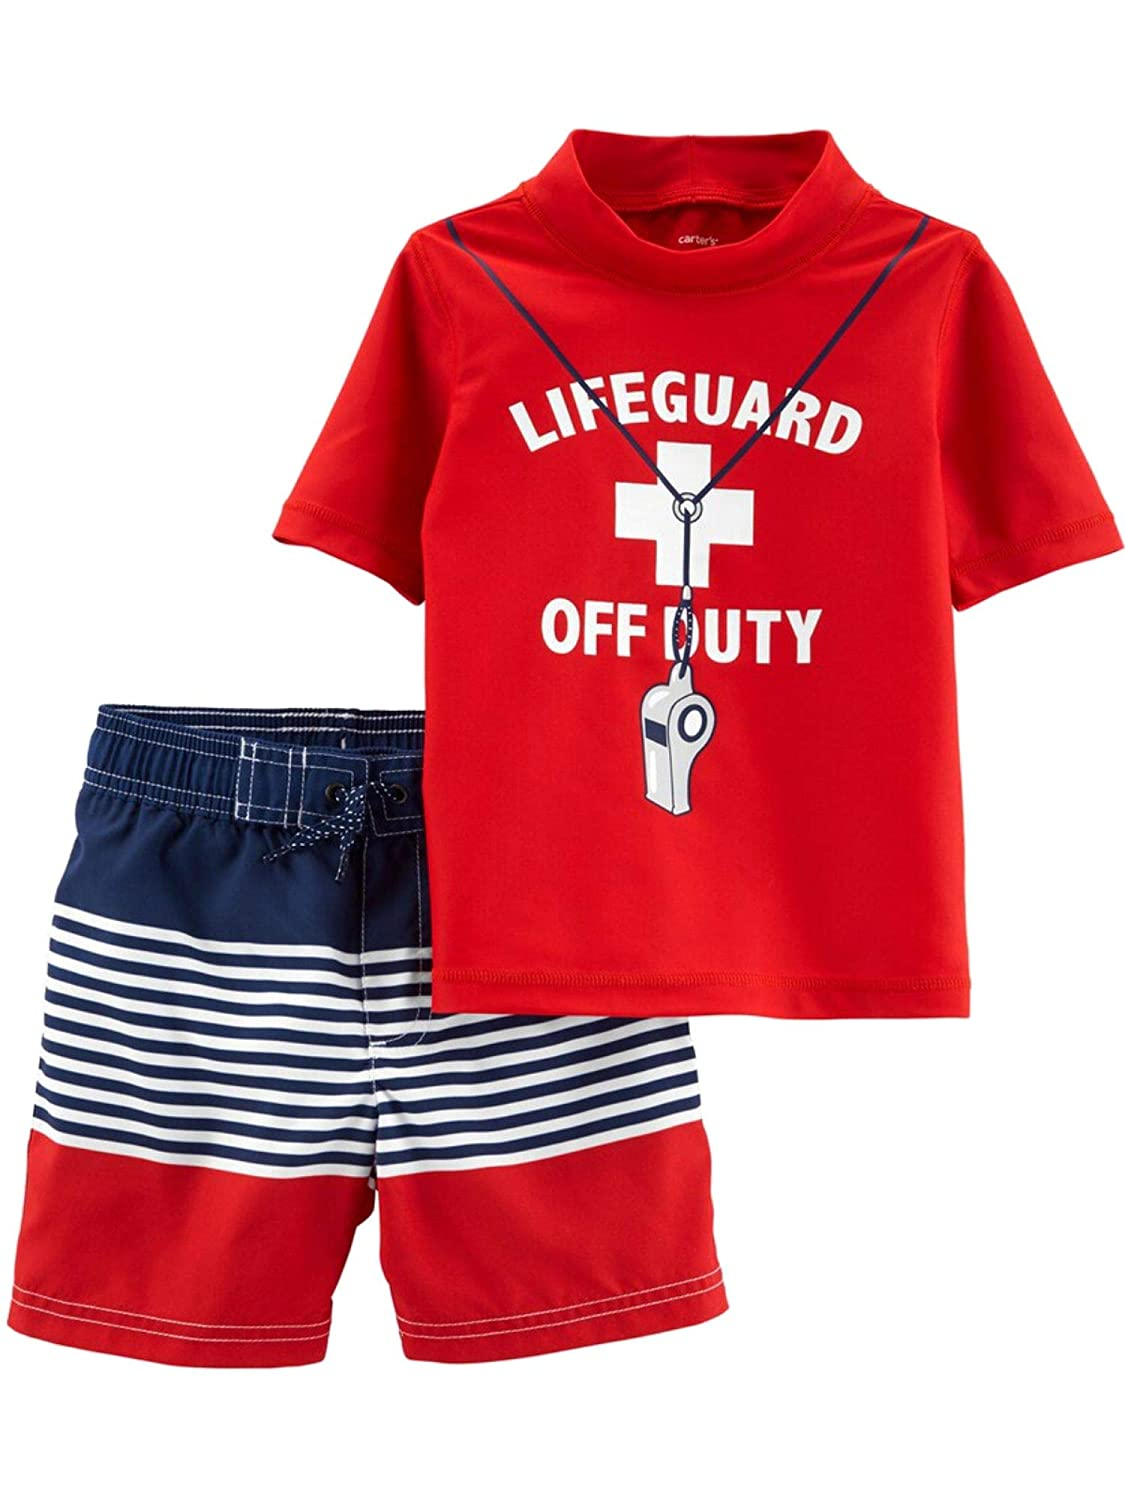 Carters Infant Boys Red Lifeguard Off Duty Rash Guard Shirt /& Swim Trunks